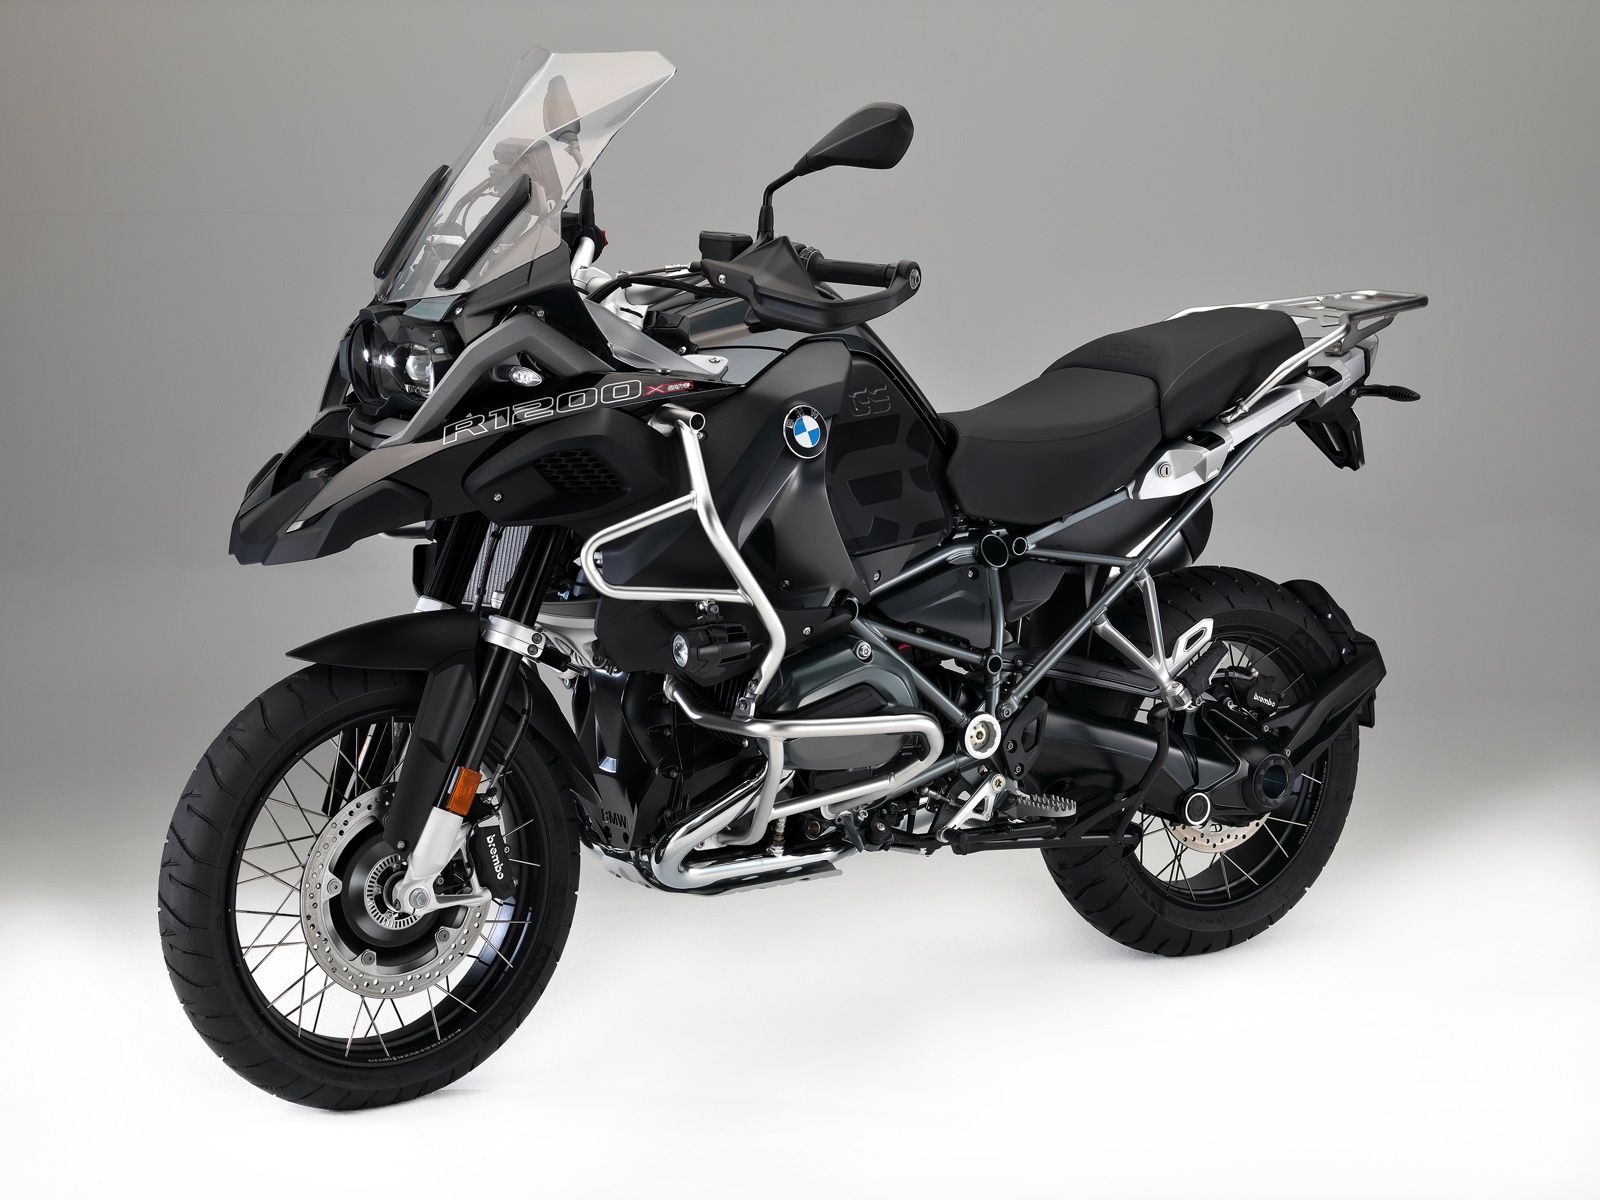 first hybrid, xdrive bmw motorcycle revealed - http://www.bmwblog